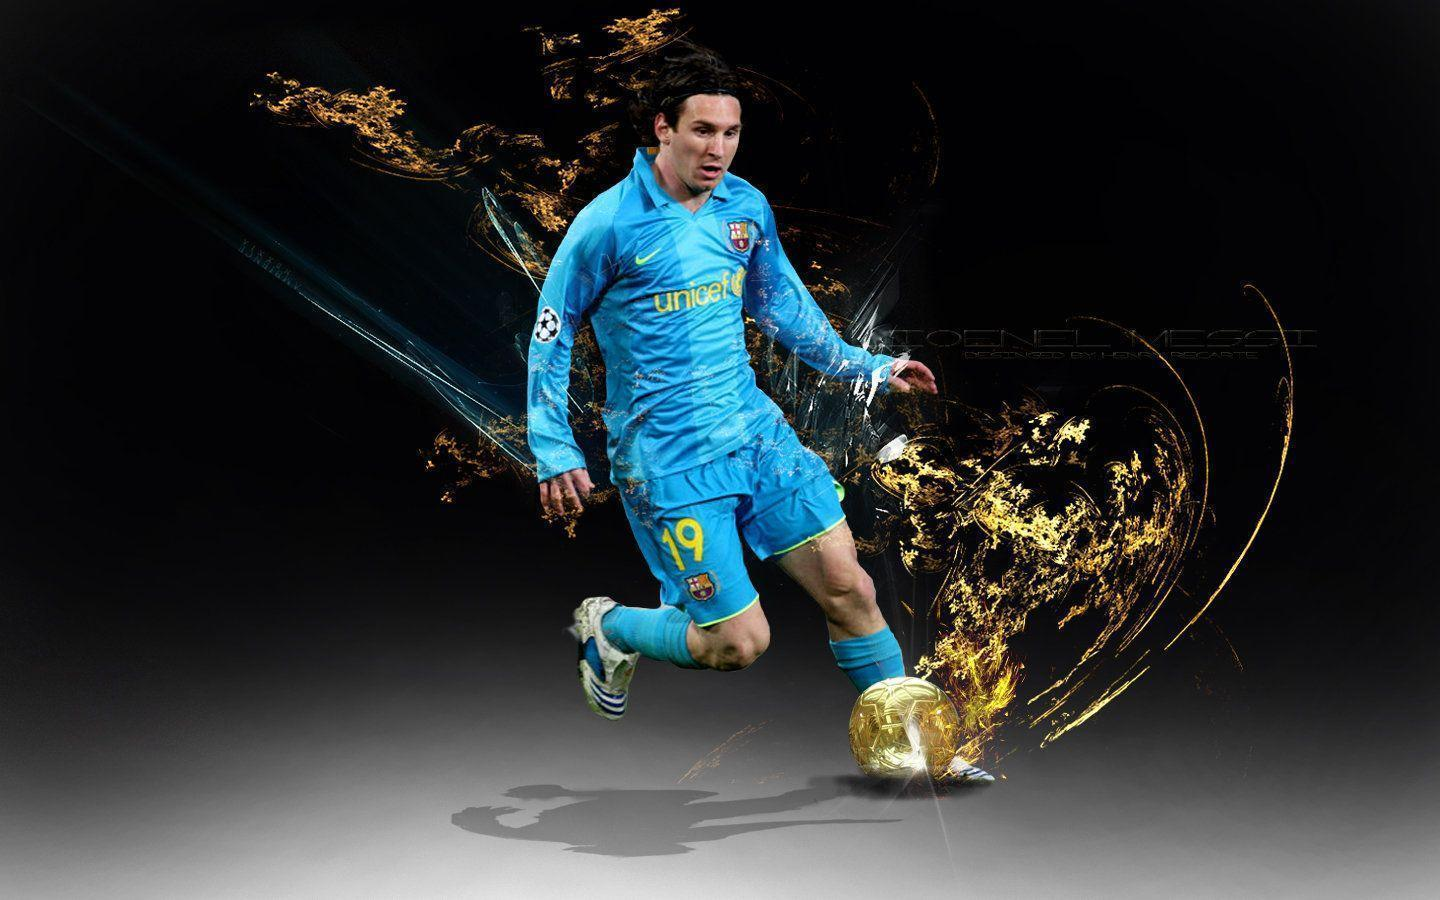 Lionel Messi HD Wallpapers 2016 - WallpaperSafari